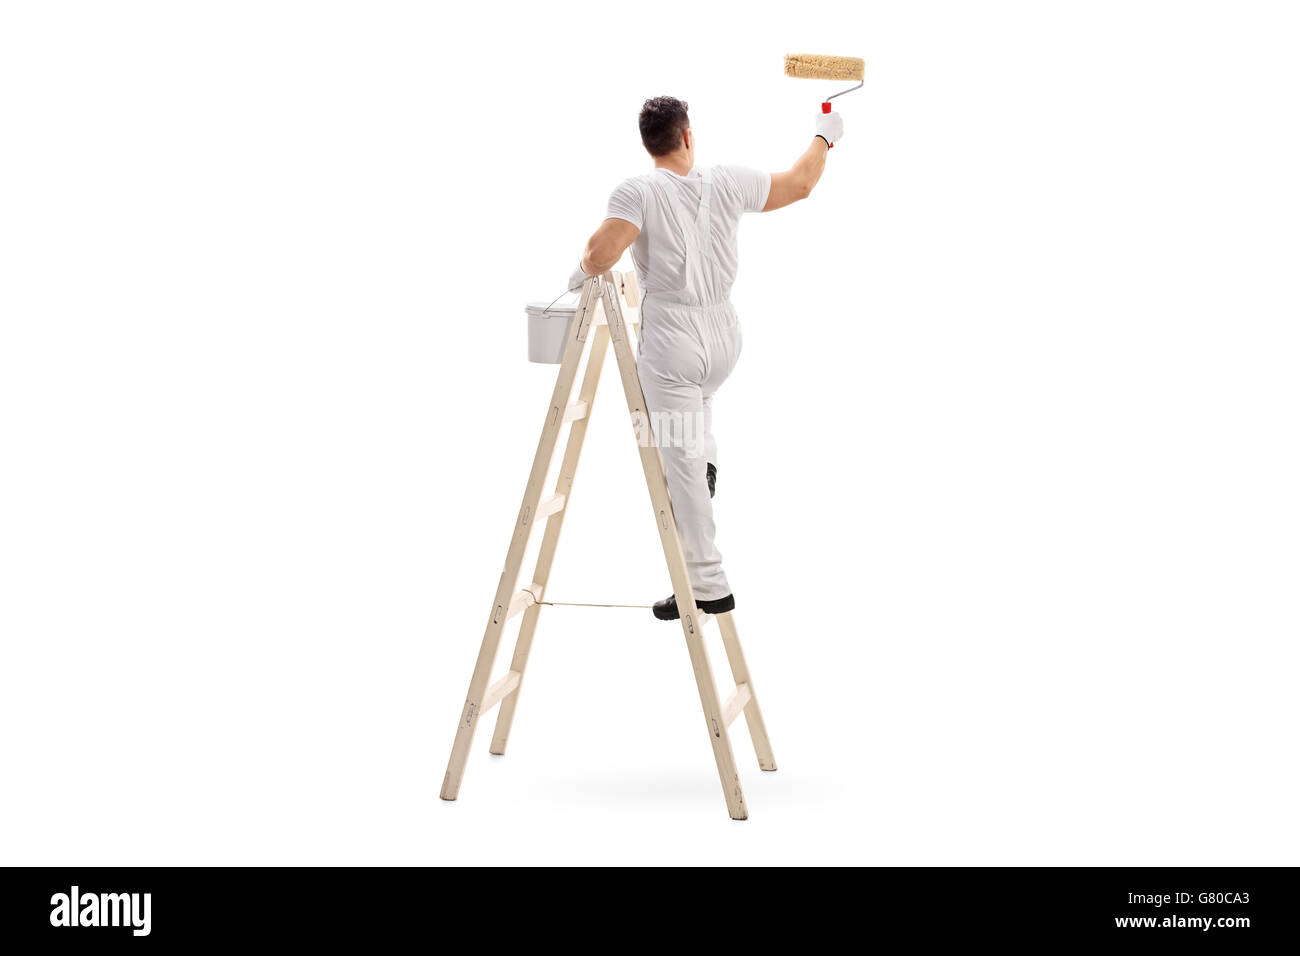 Young male decorator painting with a paint roller climbed up a ladder isolated on white background - Stock Image